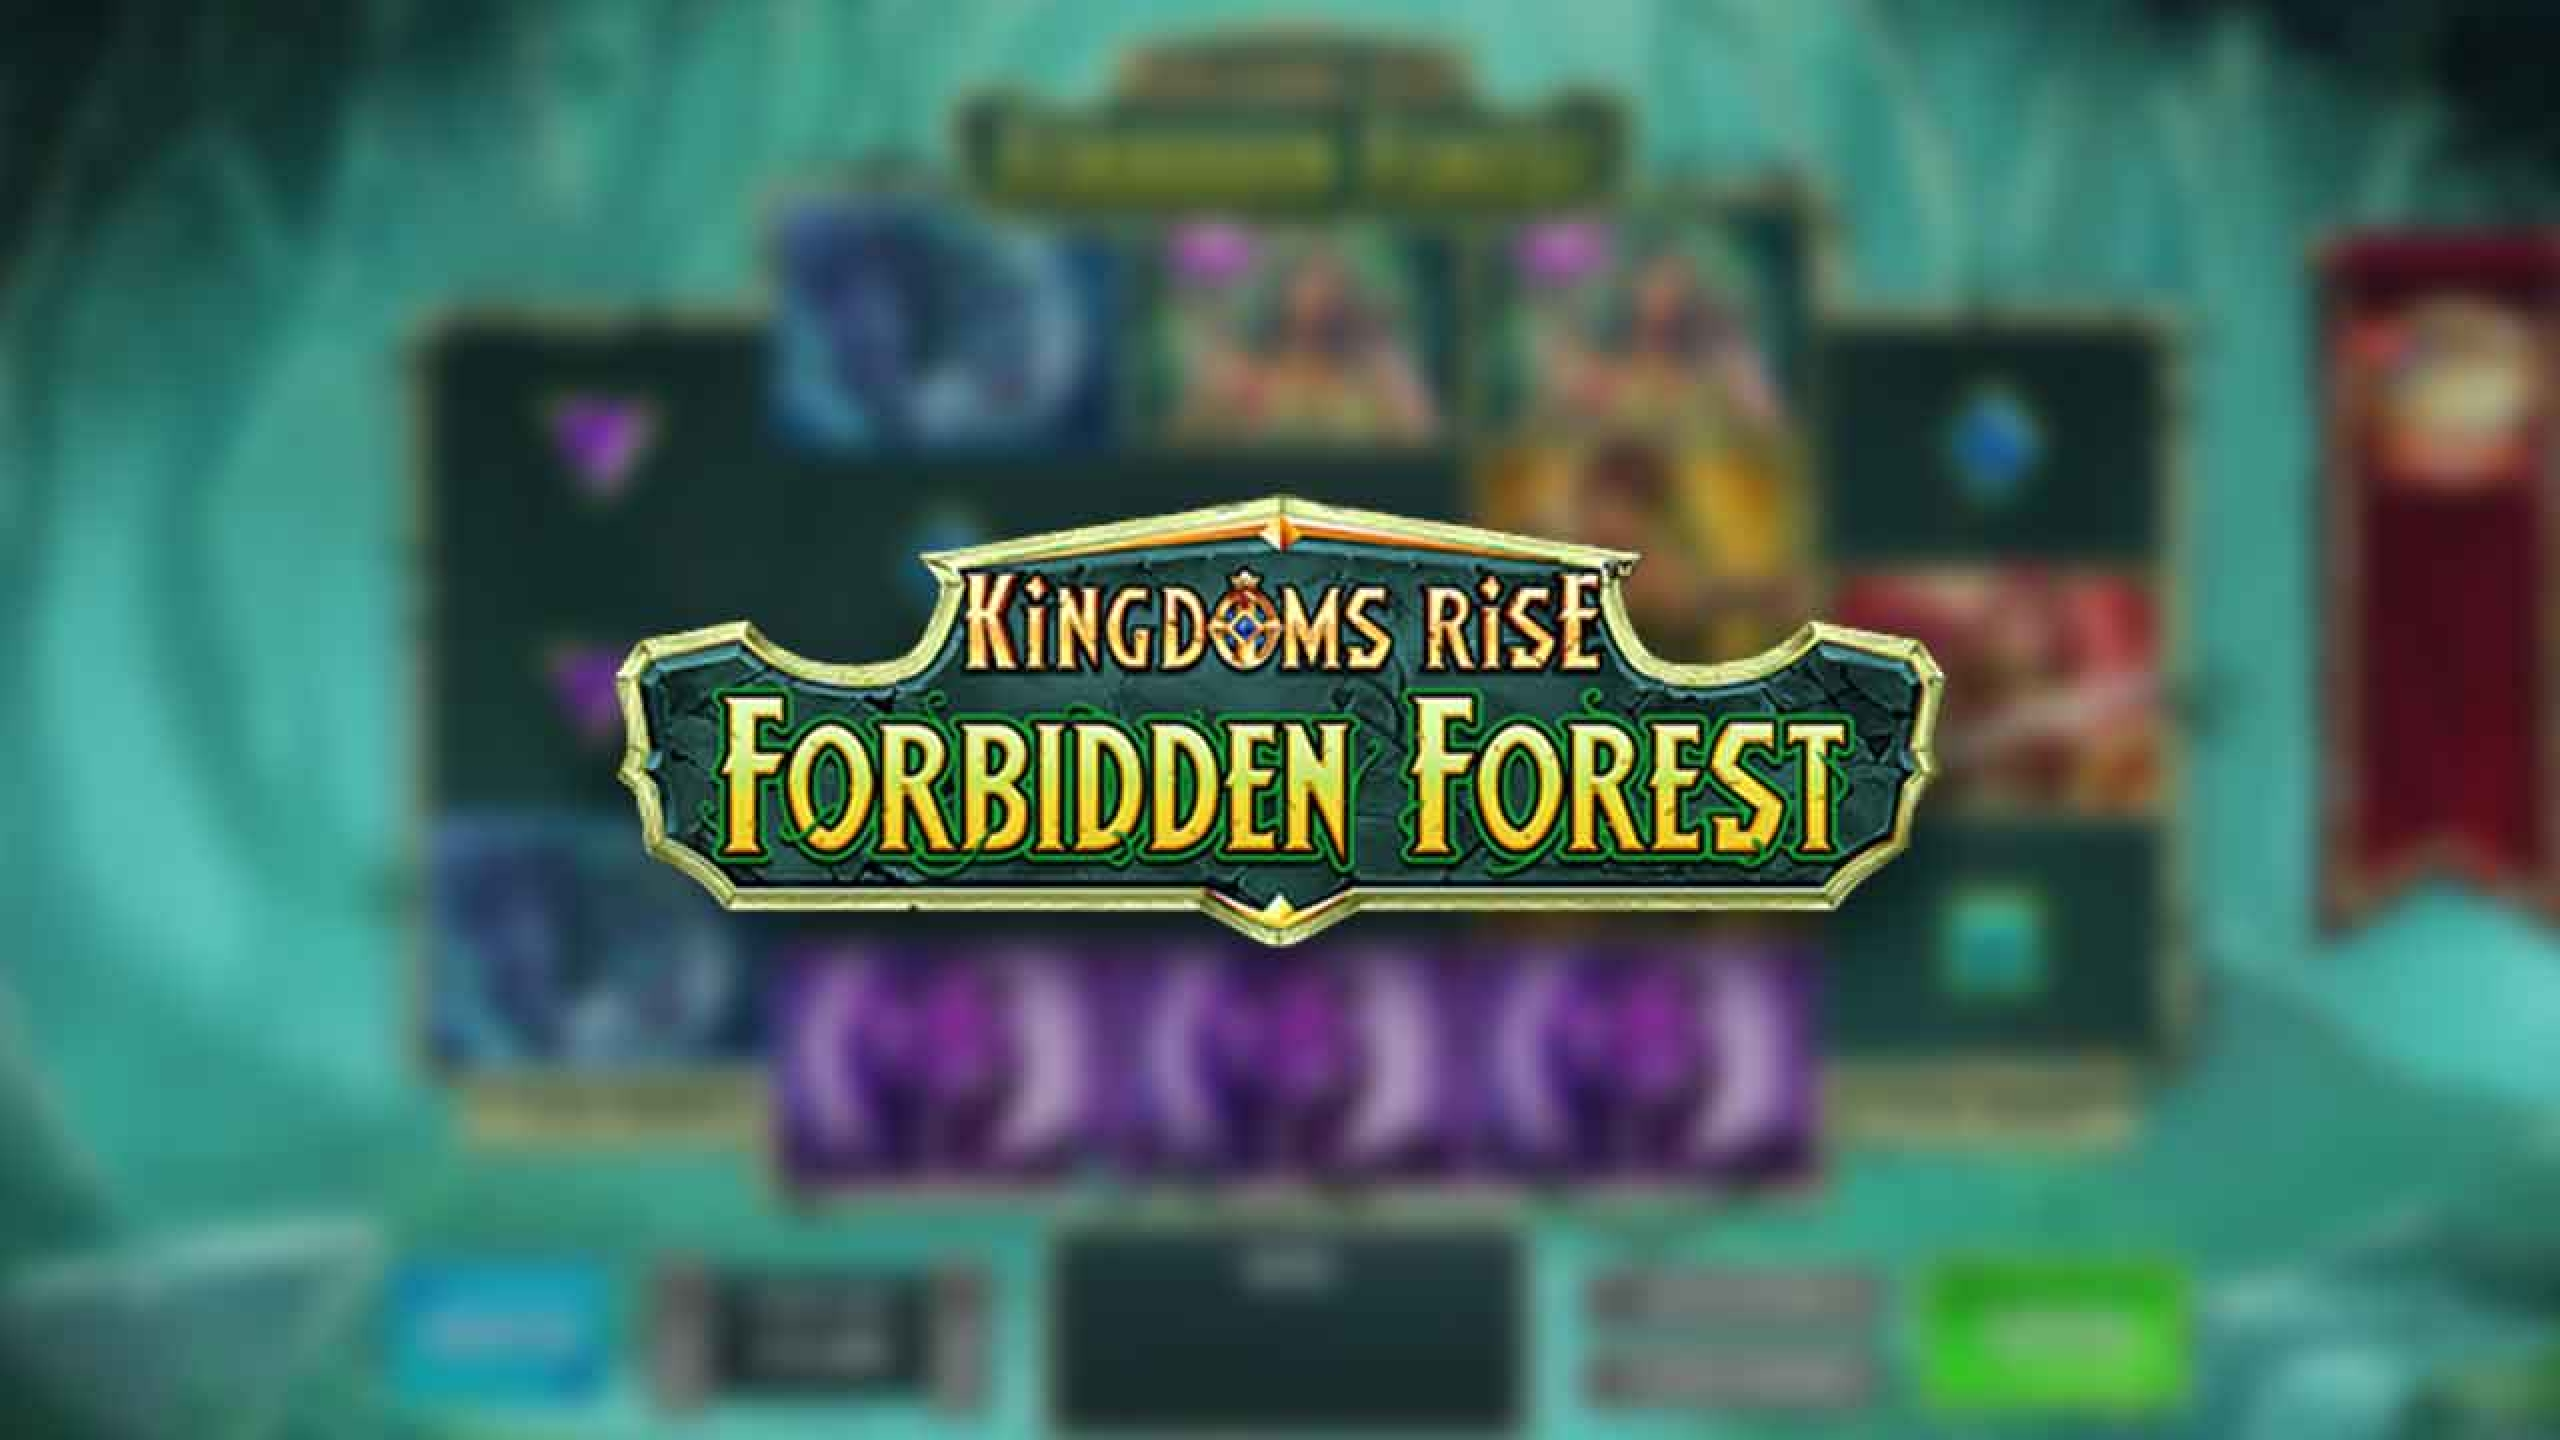 Se Kingdoms Rise: Forbidden Forest Online Slot Demo Game, Playtech Origins